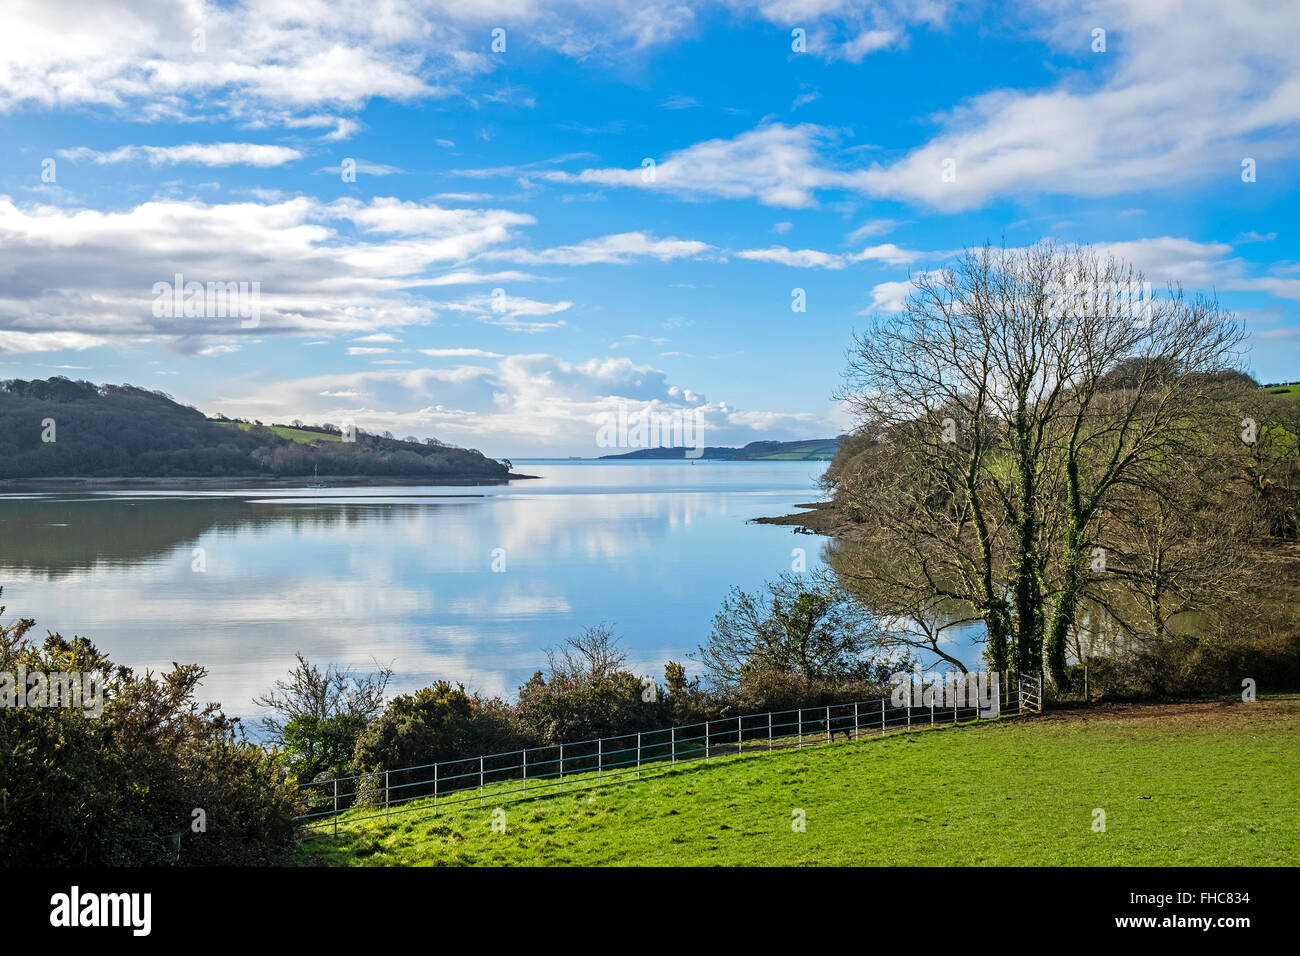 A view of the Carrick Roads on the river Fal in Cornwall, UK - Stock Image